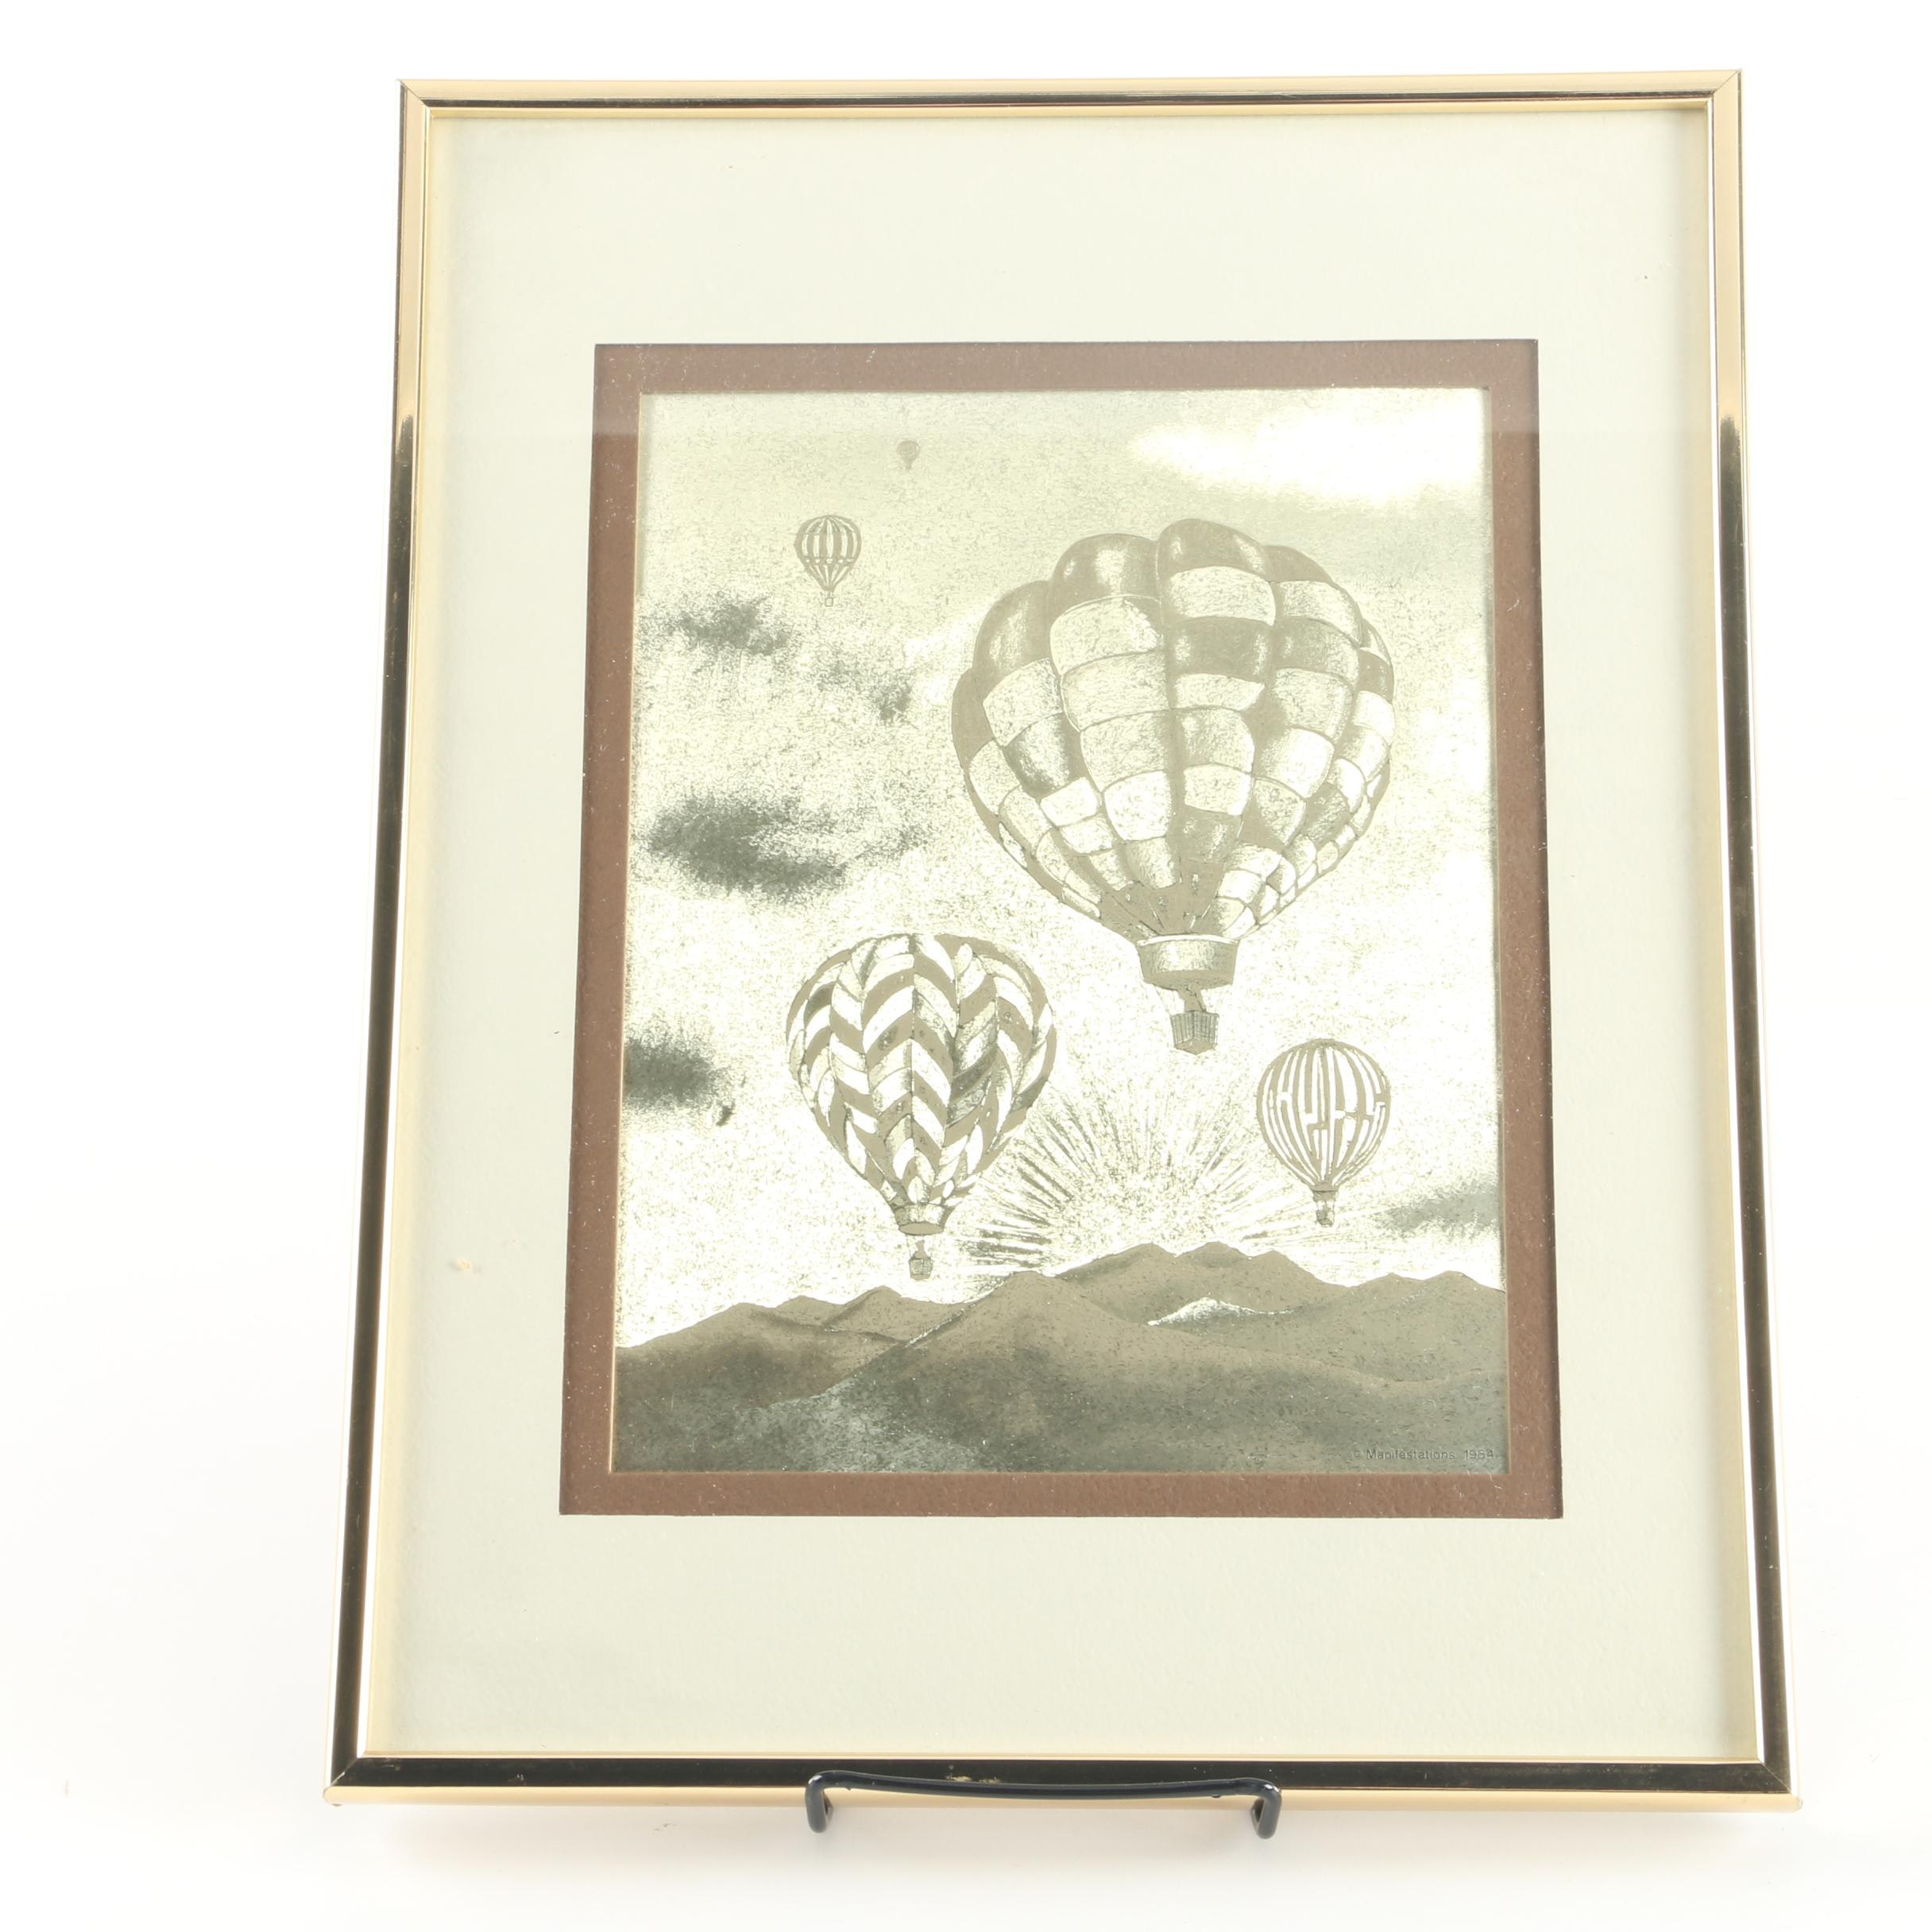 Manifestations Inc. Optical Illusionary Art Featuring Hot Air Balloons